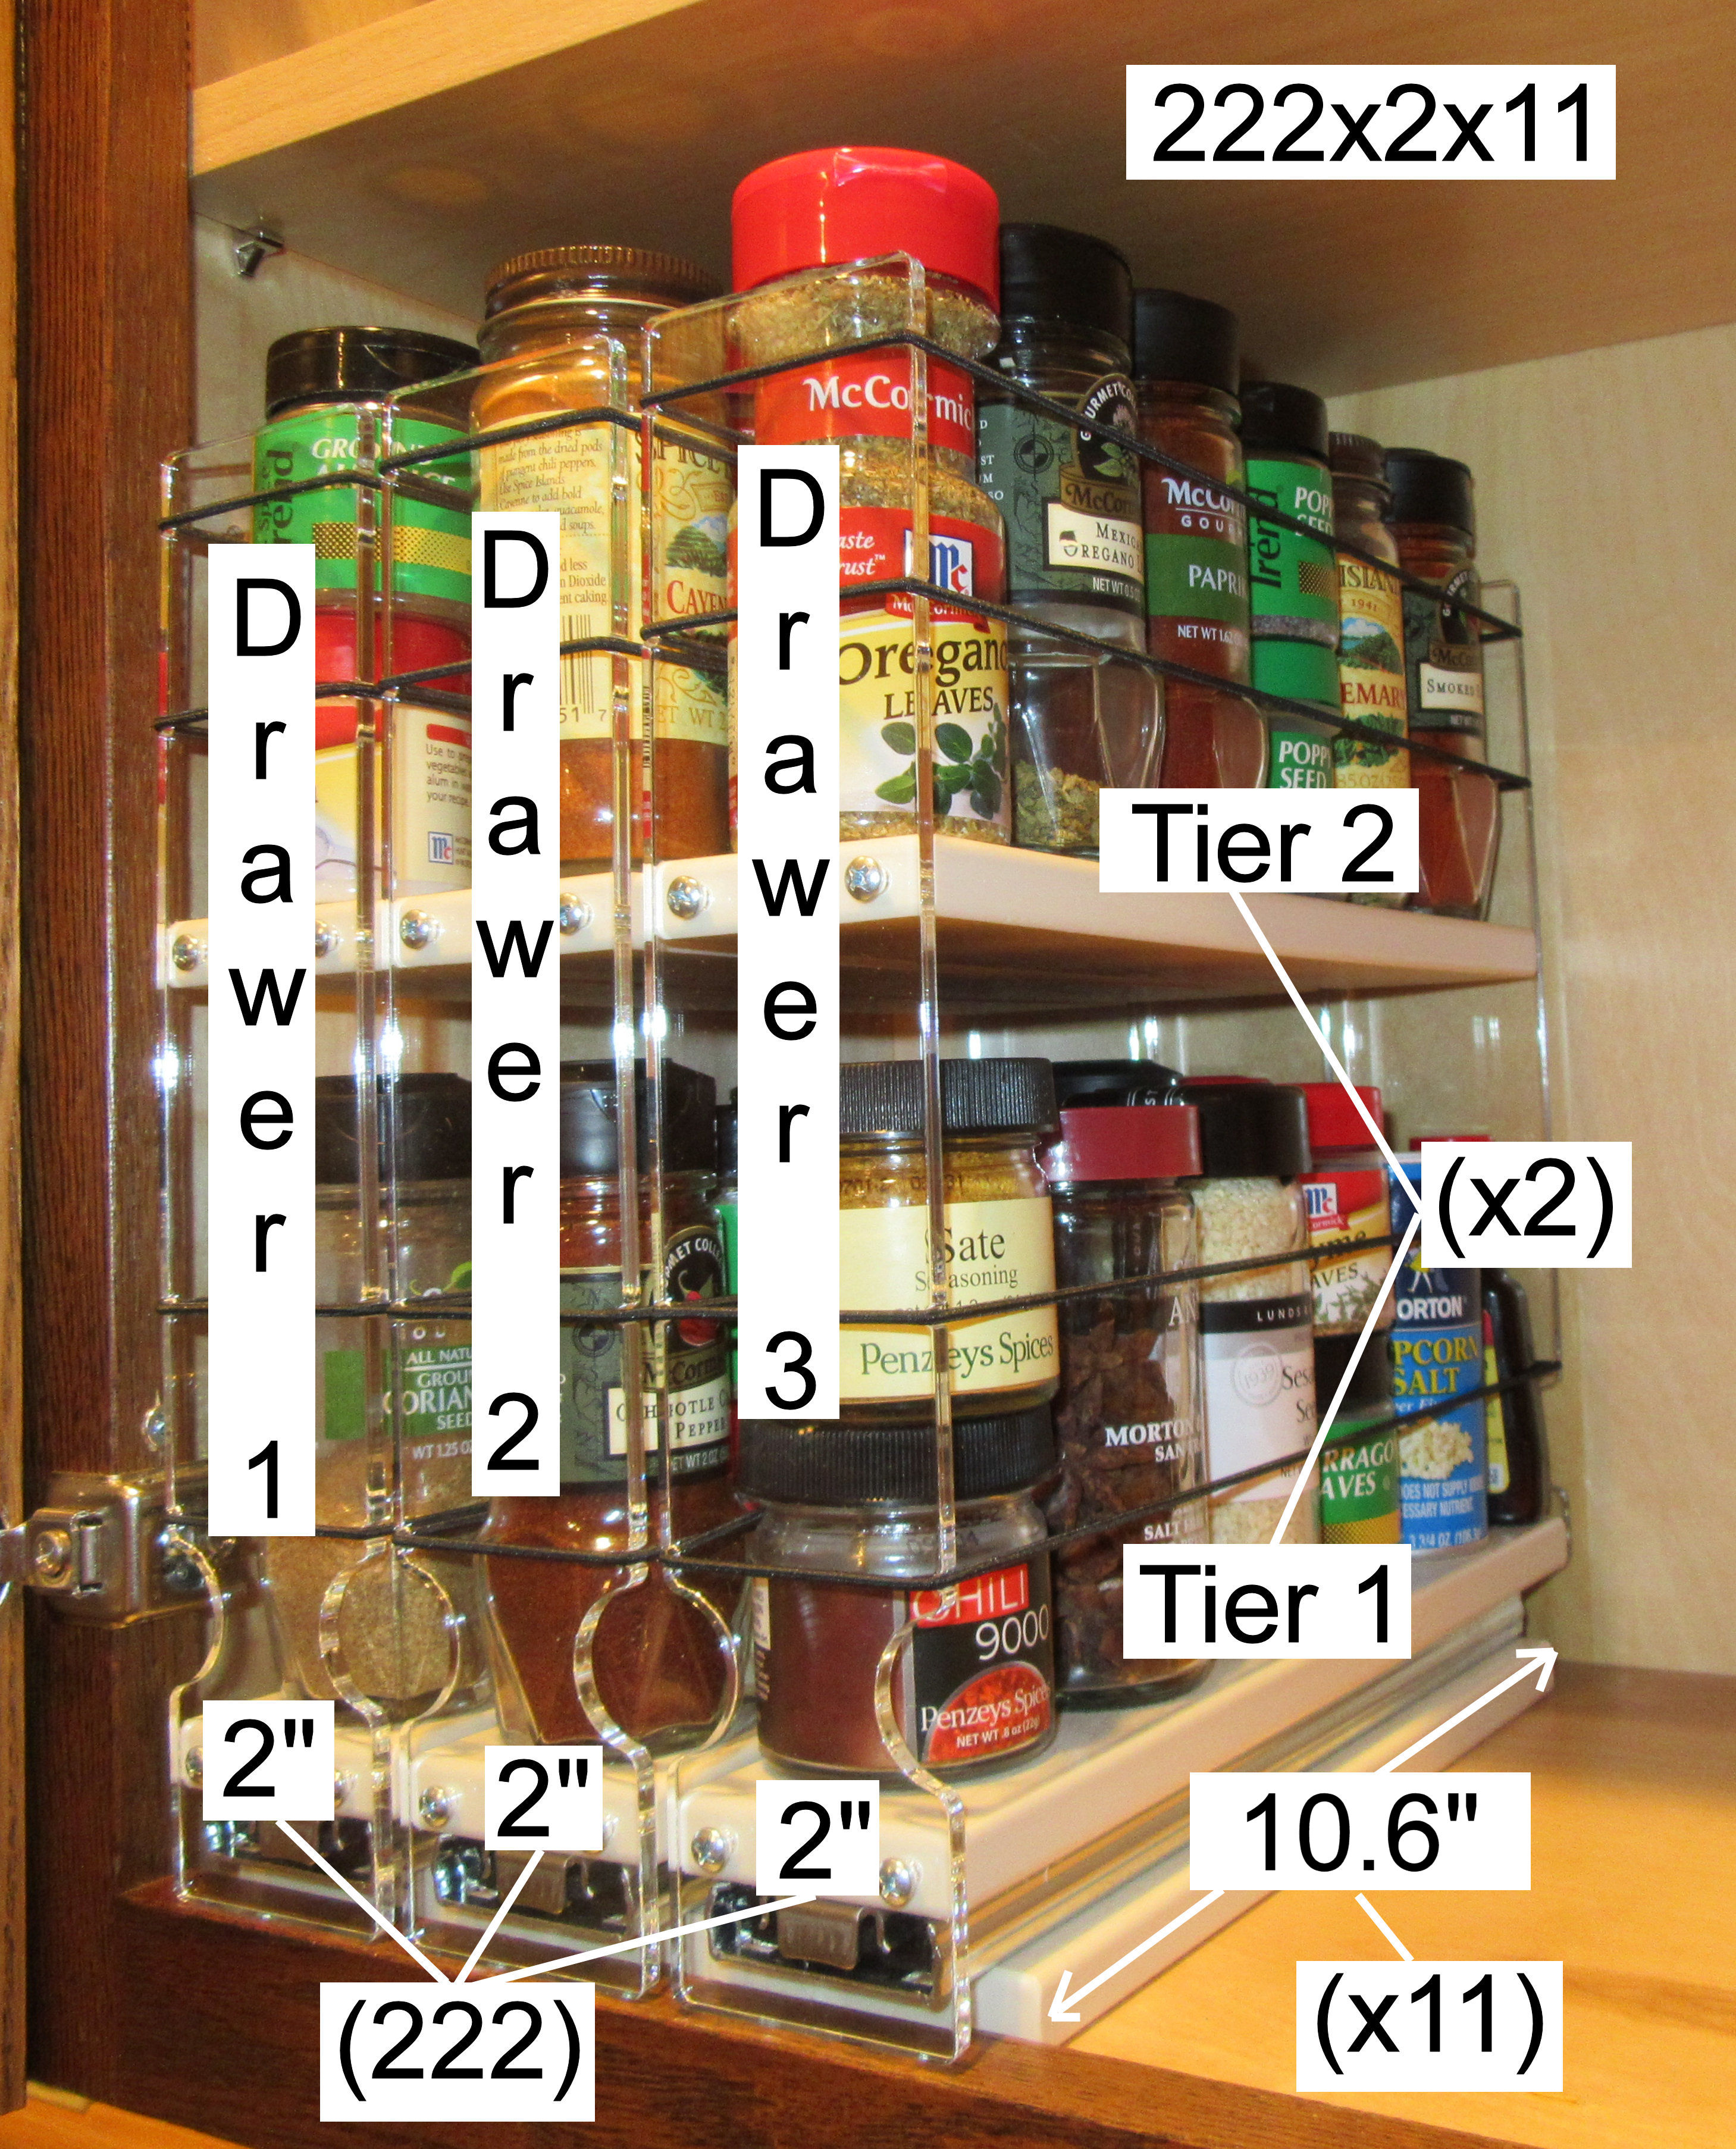 How the 222x2x11 Spice Rack is named